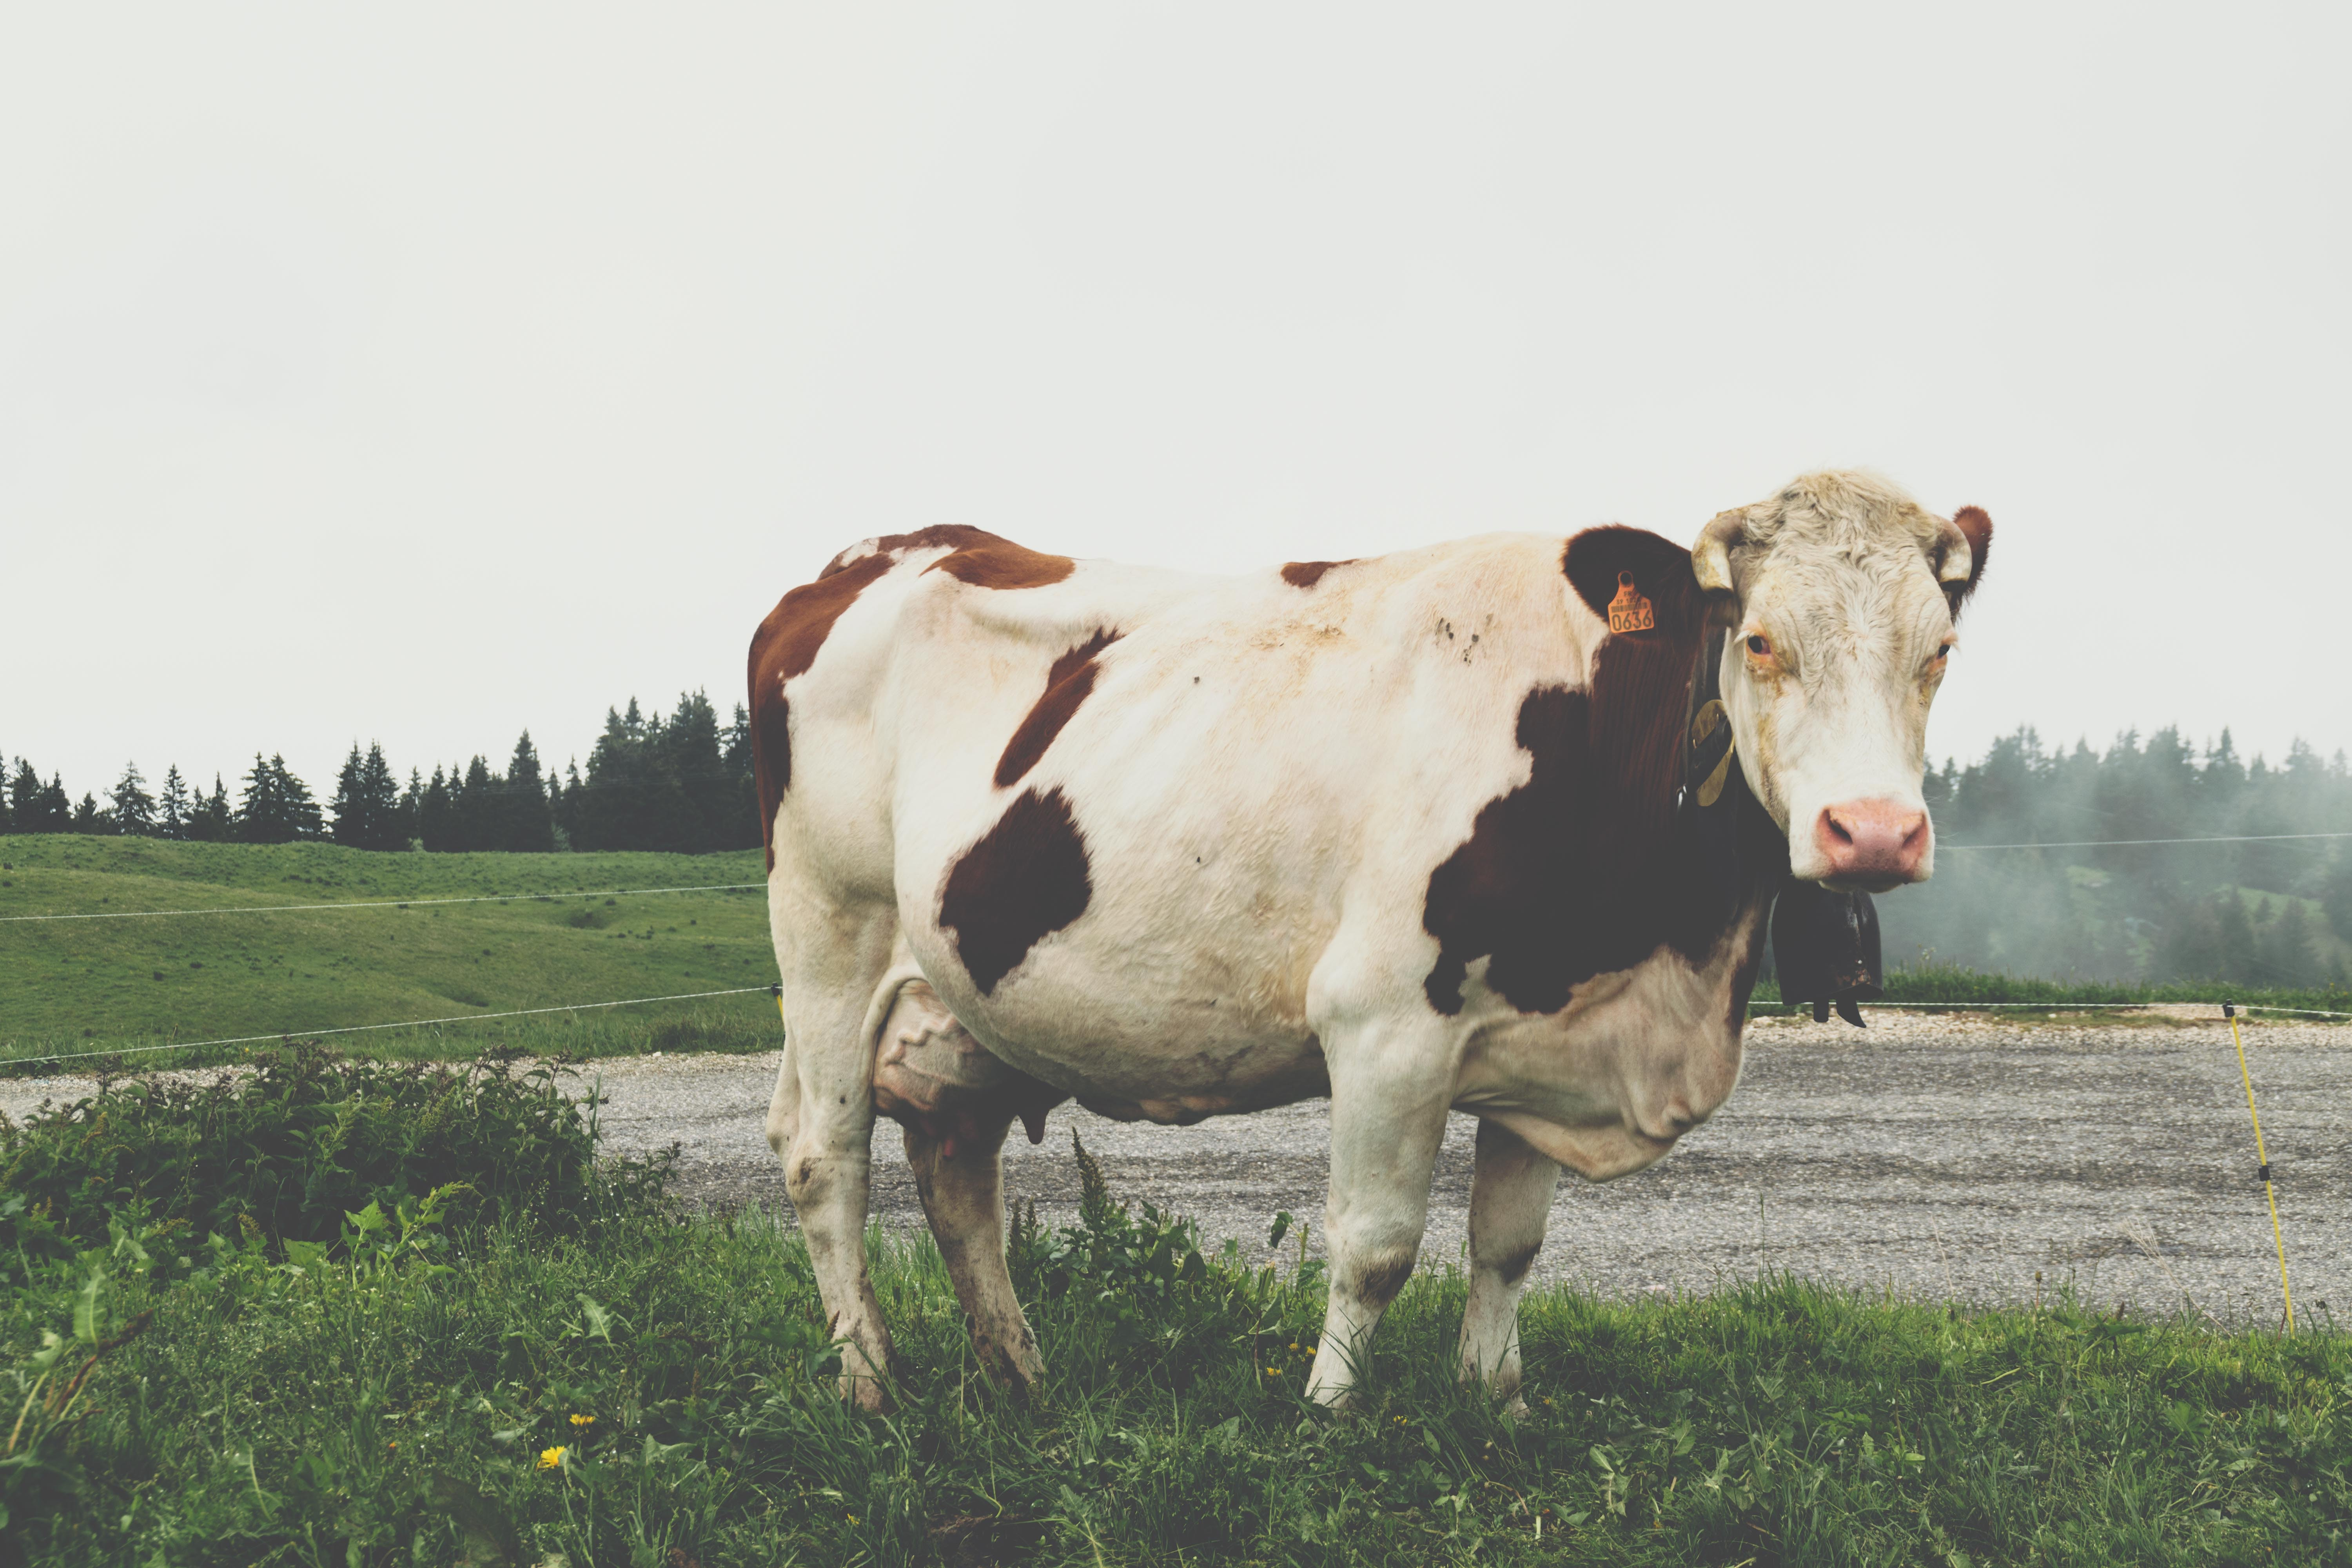 A cow standing in a field and looking at the camera.